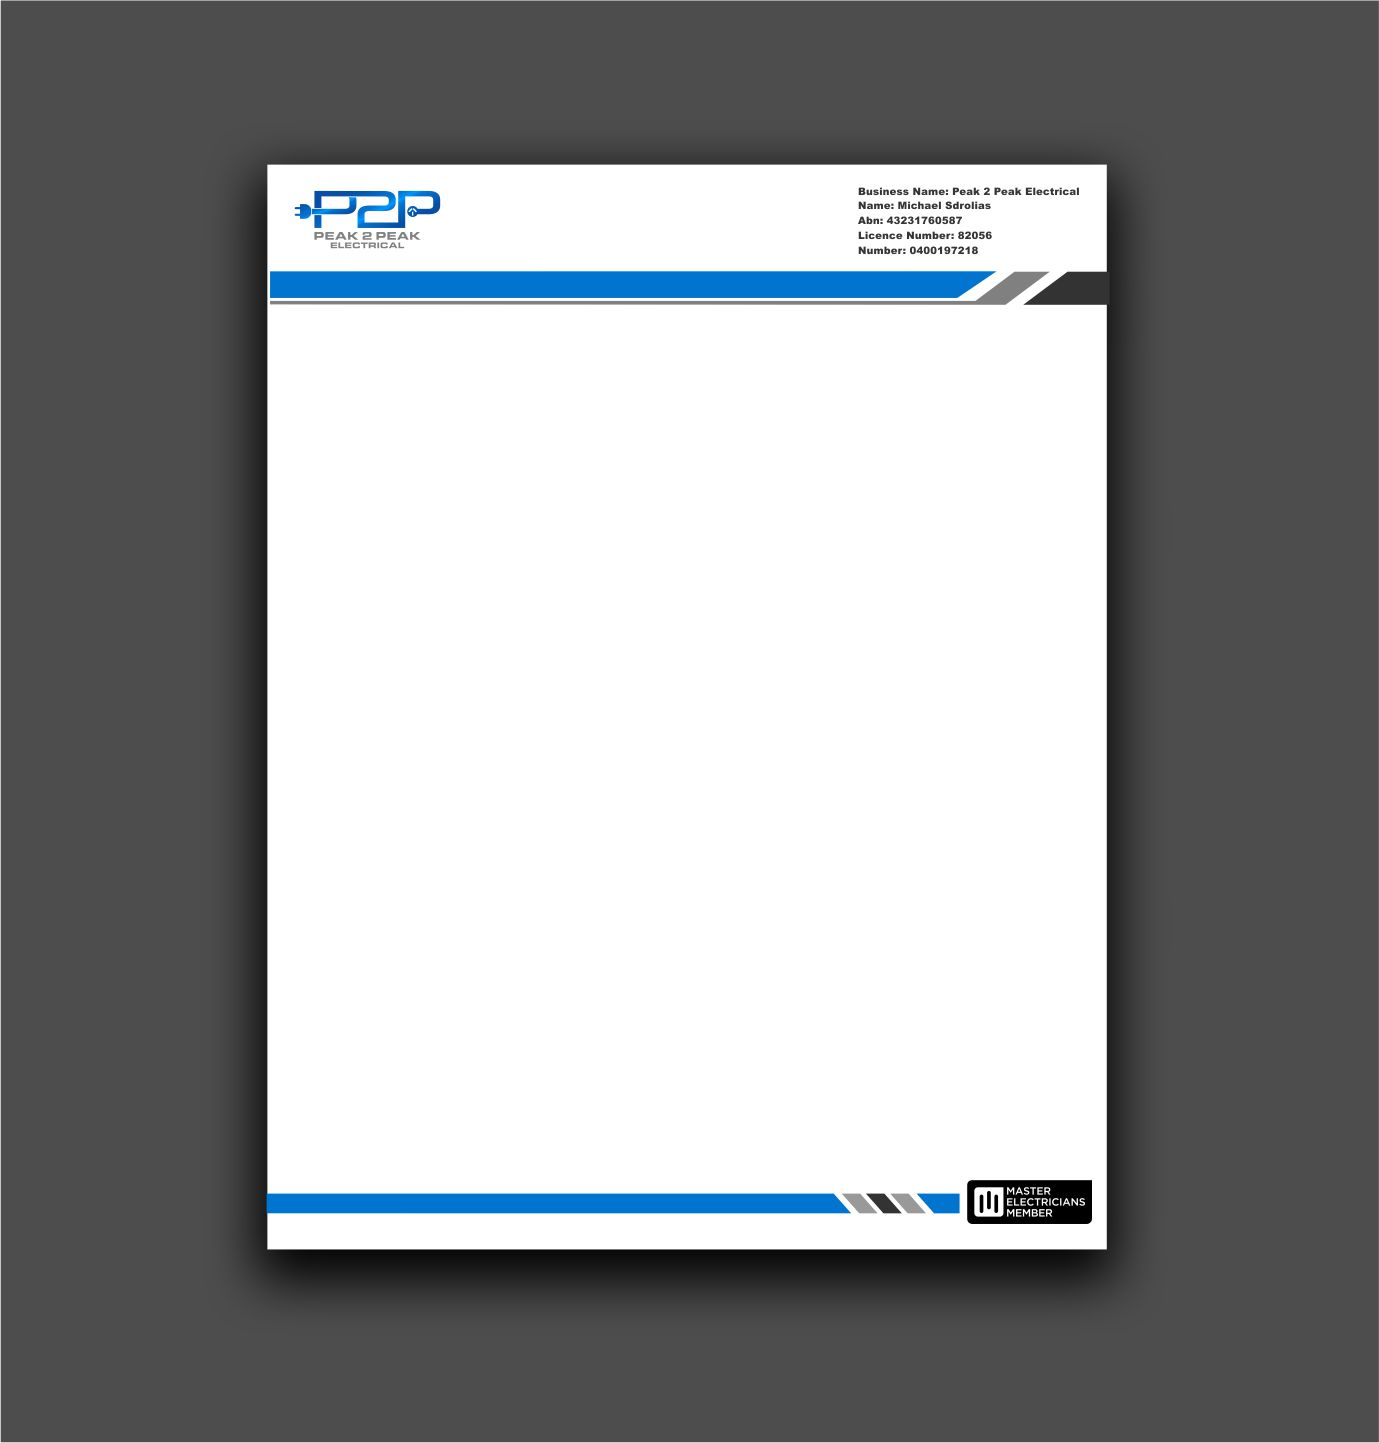 professional bold letterhead design for peak 2 peak electrical by